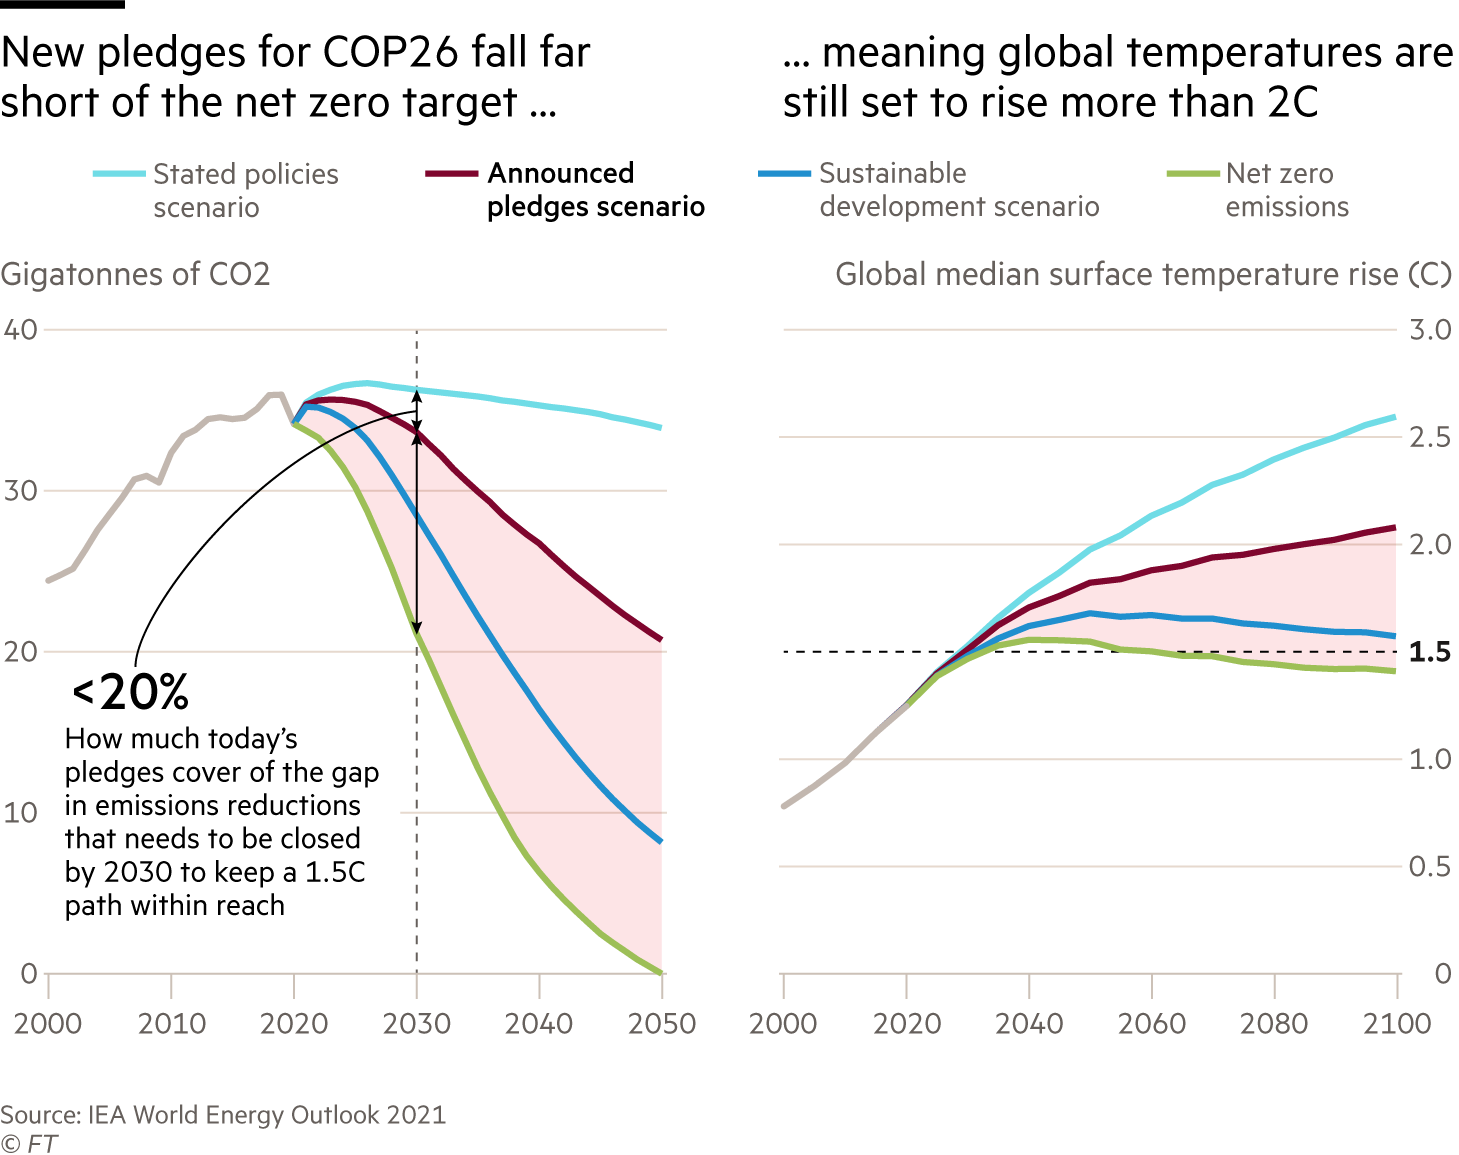 New pledges for COP26 fall far short of the net zero target meaning global temperatures are still set to hit more than 2C.  Chart showing CO2 emissions based on 4 emissions scenarios Net zero emissions Sustainable development scenario Announced pledges scenario Stated policies scenario Today's pledges cover less than 20% of the gap in emissions reductions that needs to be closed by 2030 to keep a 1.5 °C path within reach  Chart showing clobal median surface temperature rise (C) based on the same 4 emissions scenarios